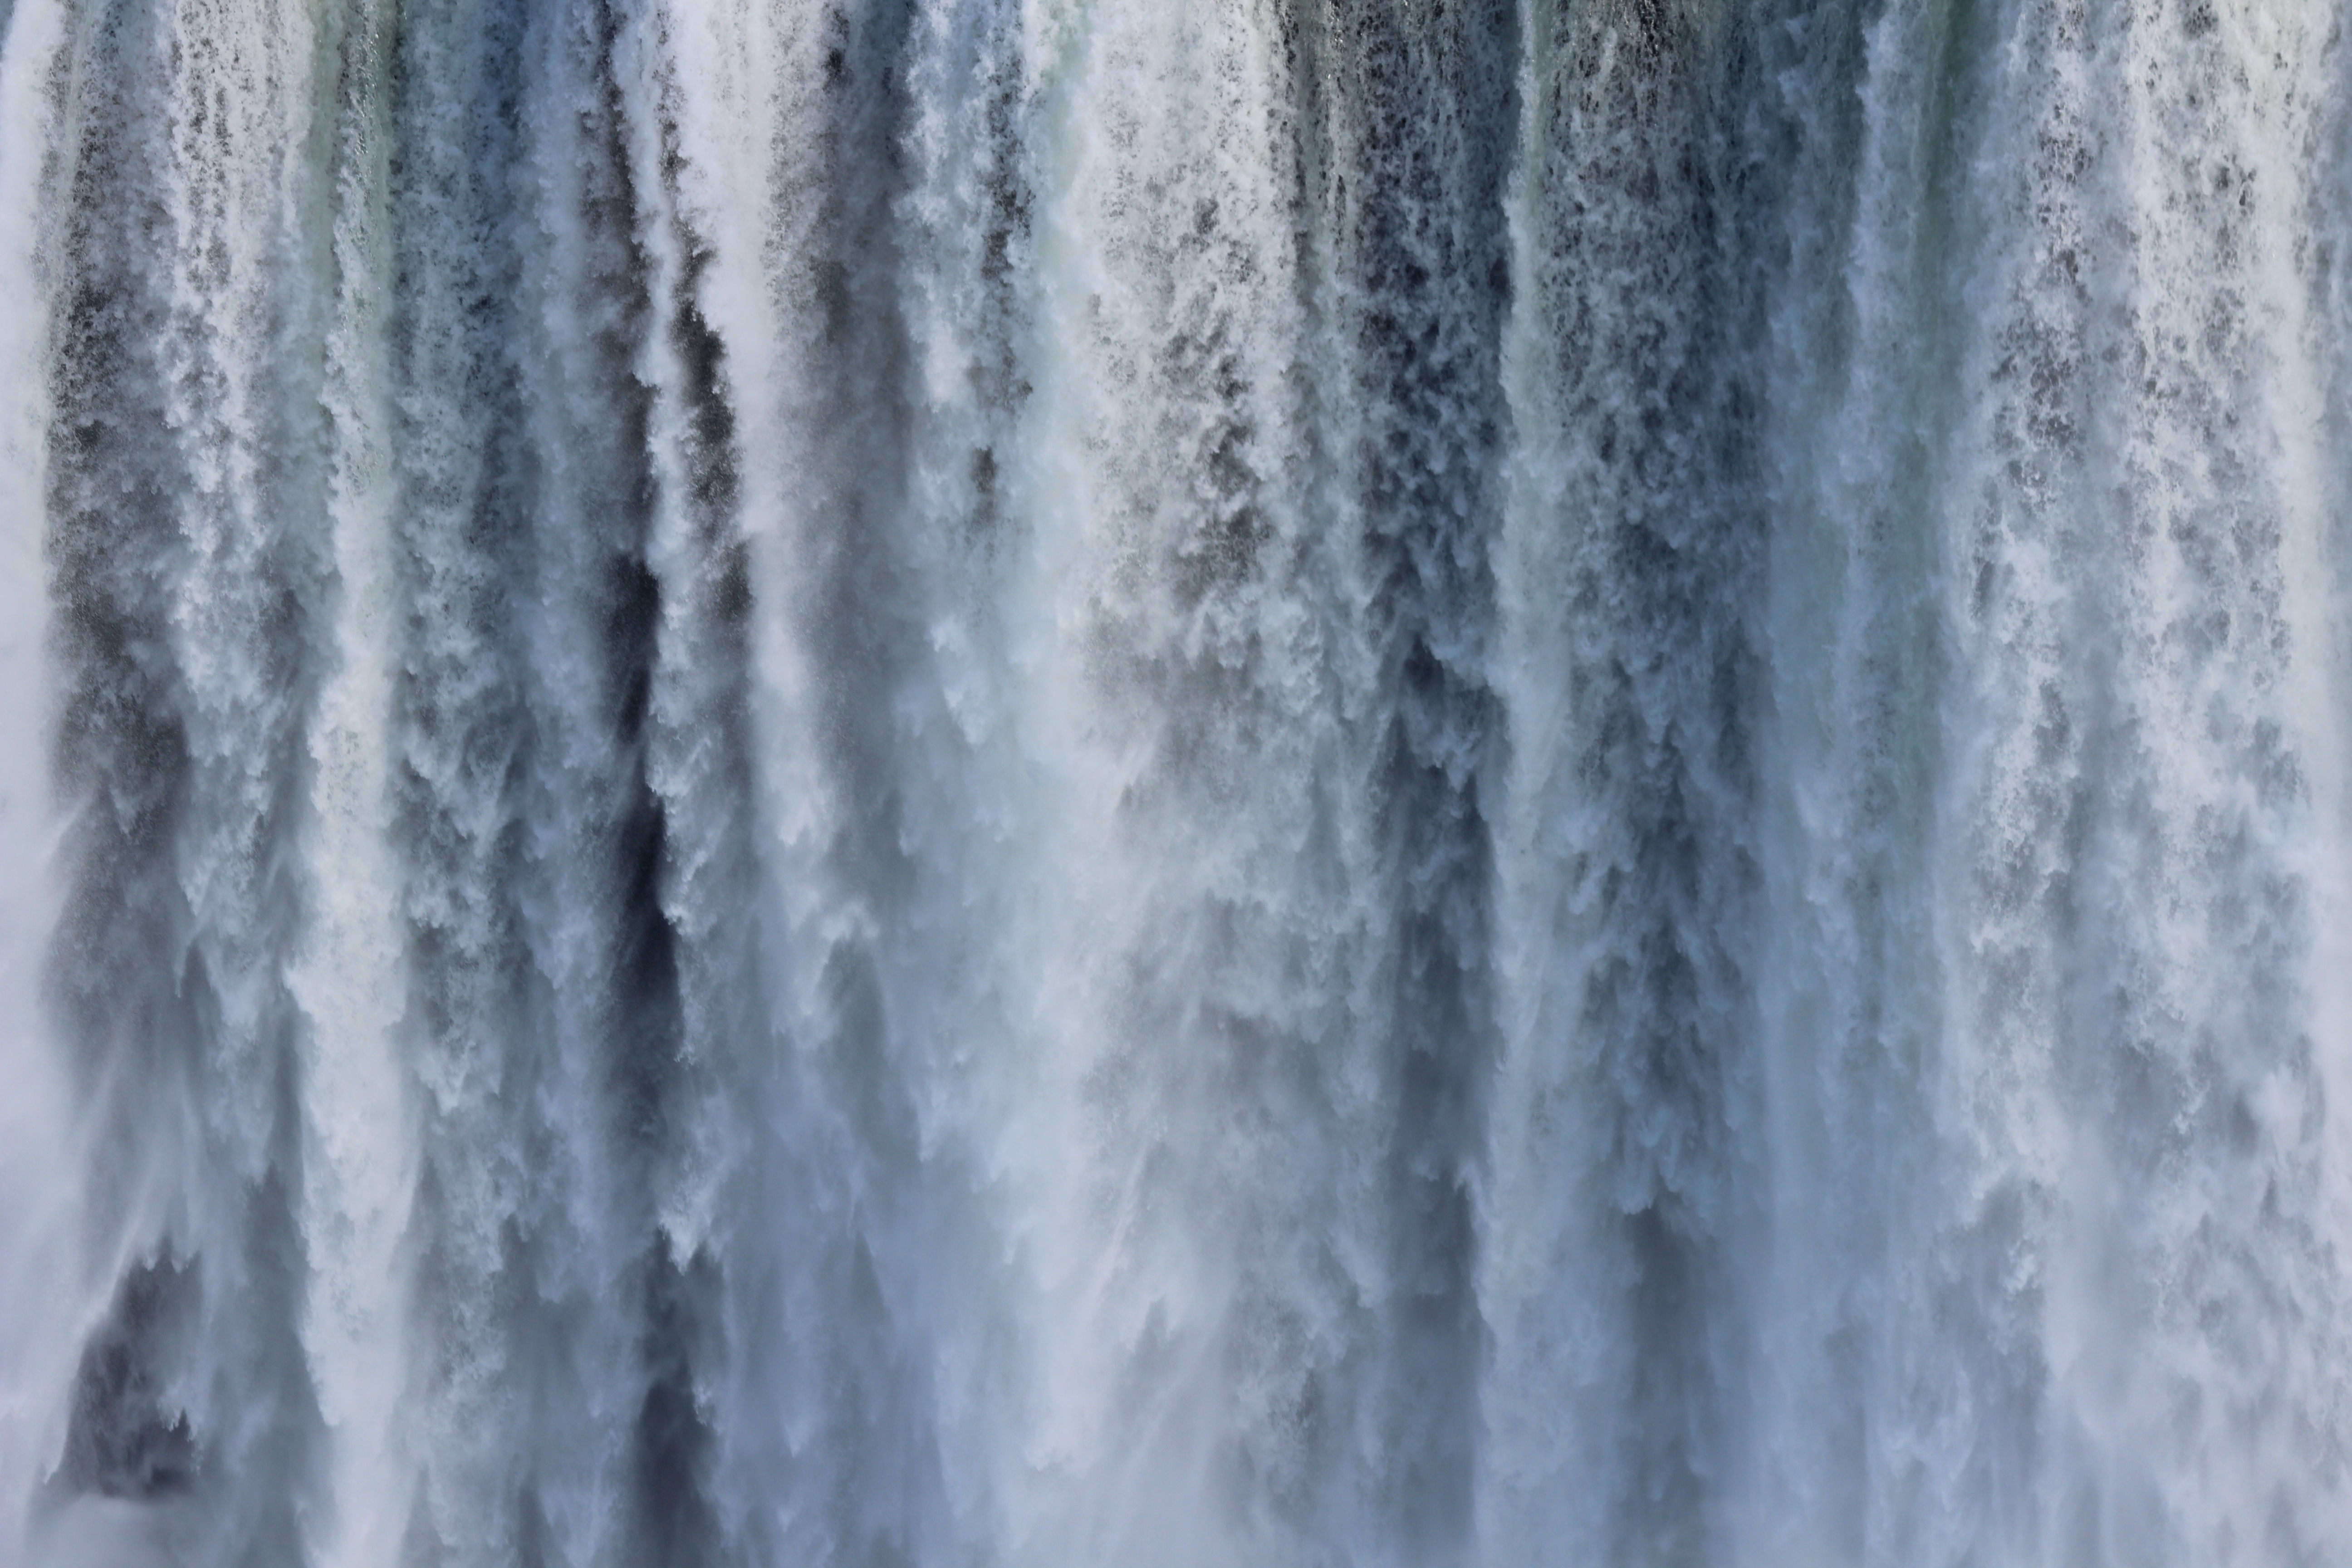 Water, Falling, flowing, Abstract, Falls, Niagara, Outdoor, HQ Photo